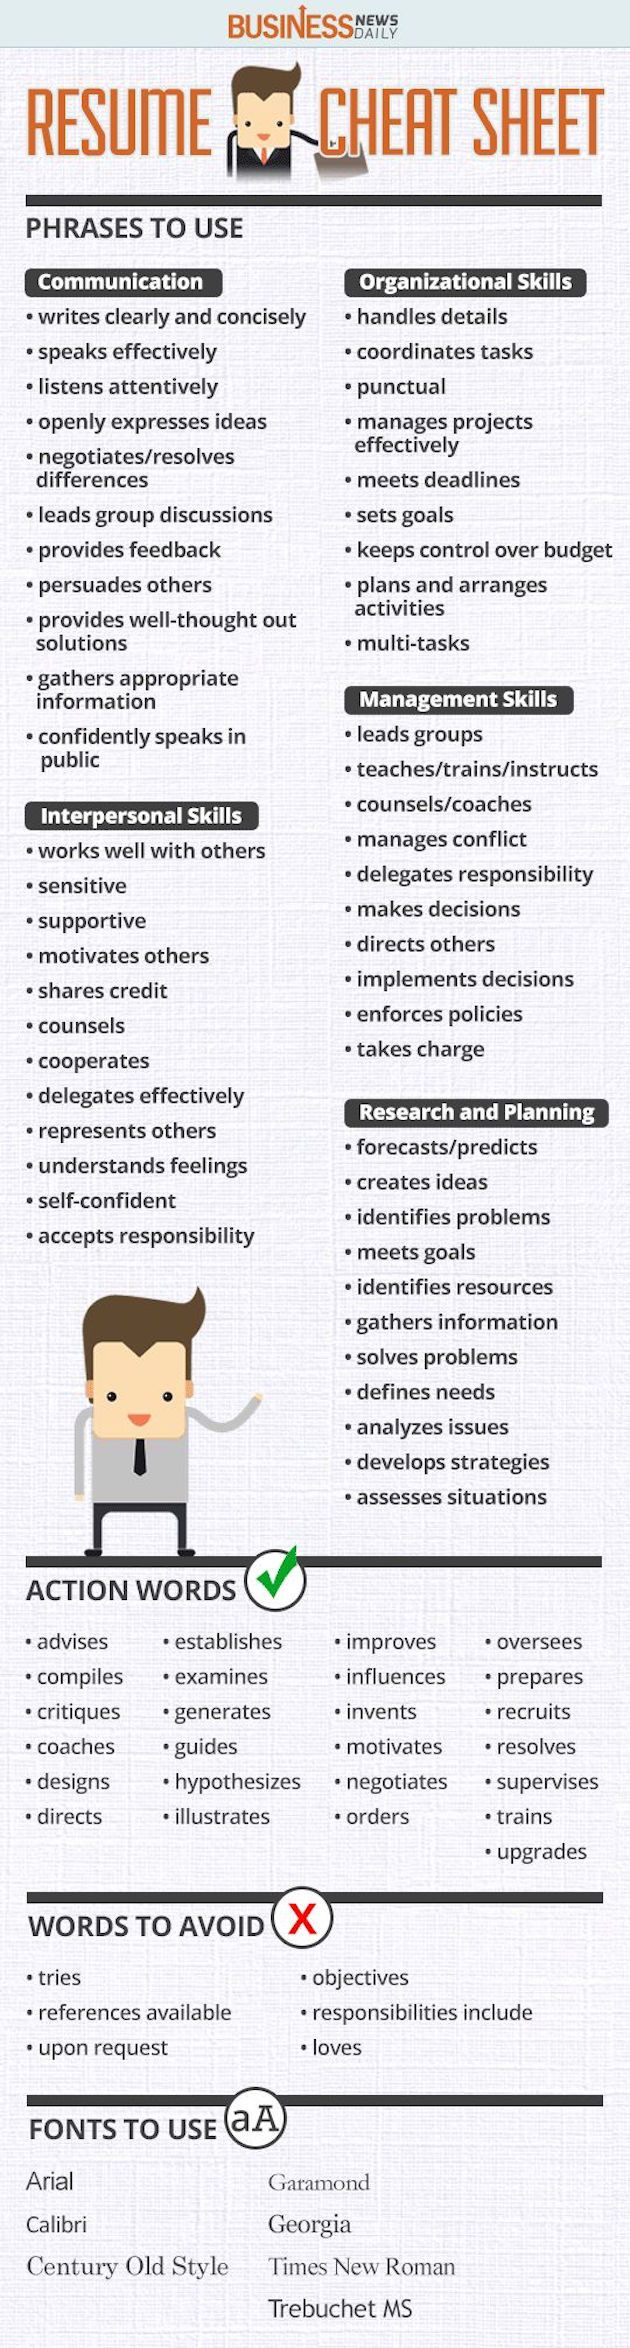 Resume Can You Use The Word I In A Resume best 25 resume words ideas on pinterest these are all the you should use a to make your normal skills